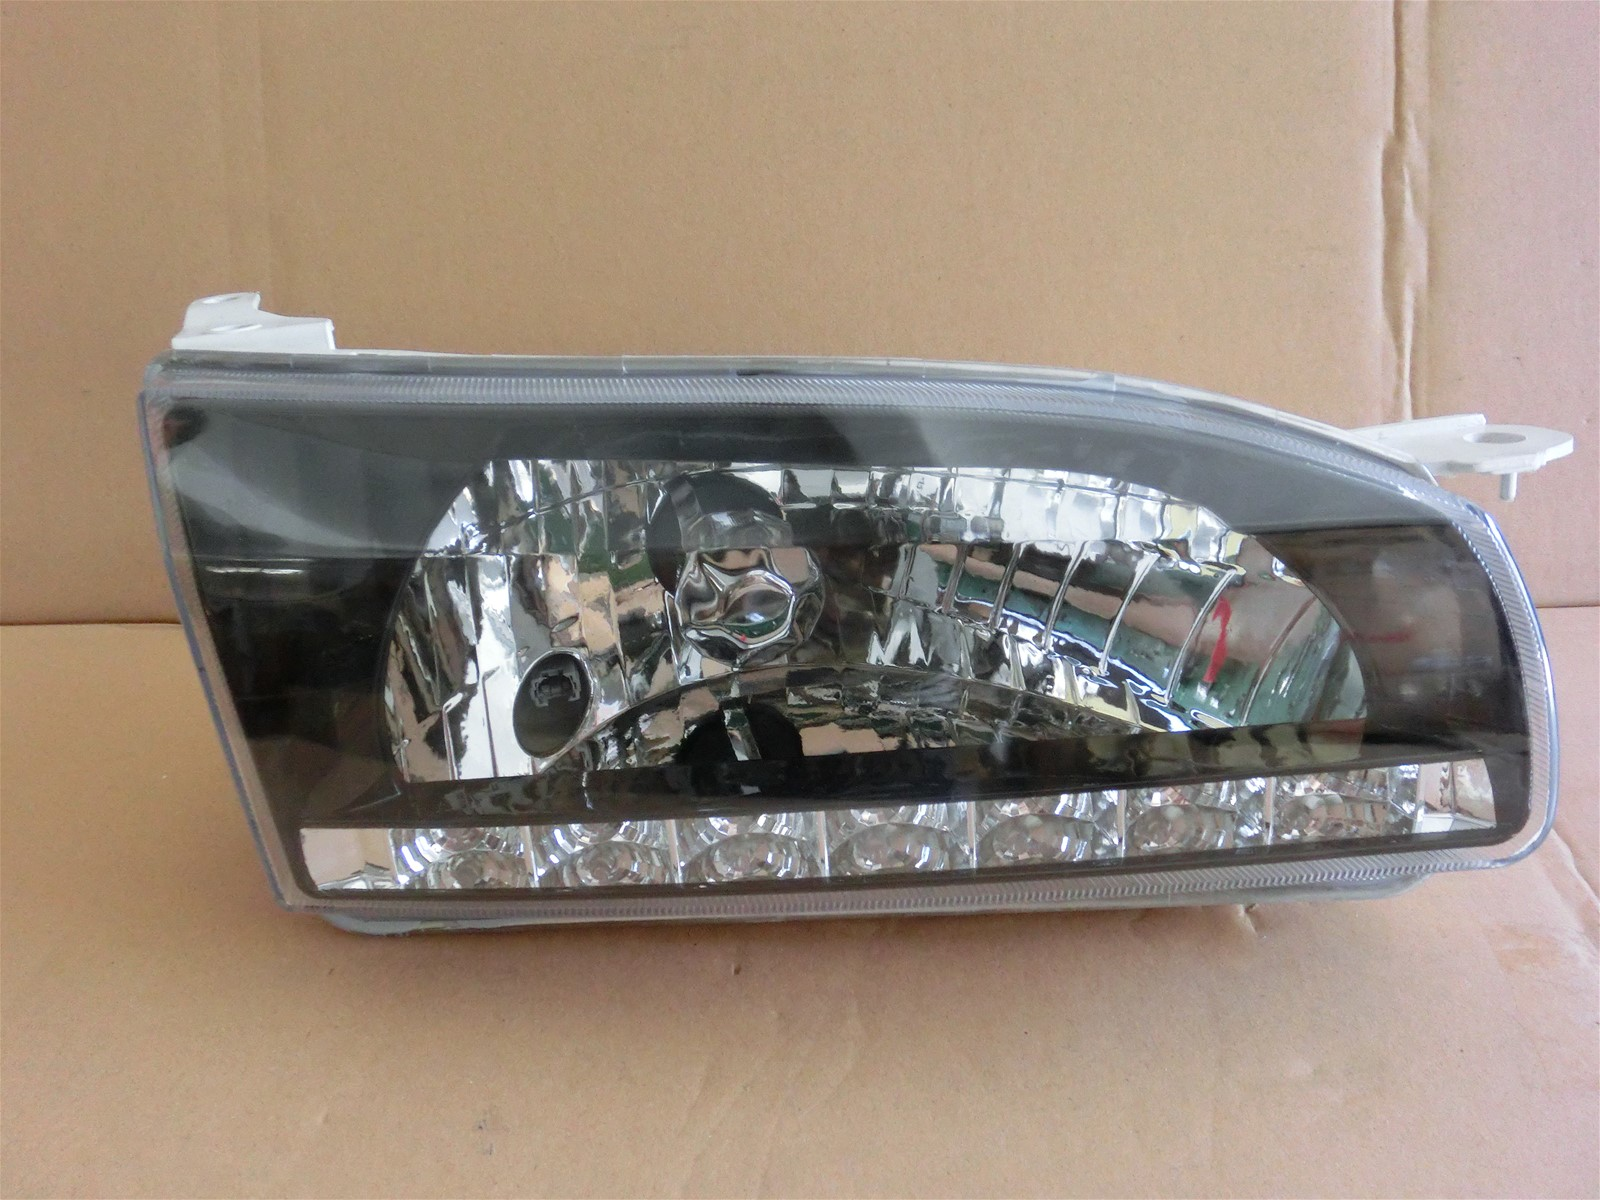 TOYOTA COROLLA AE110 95' HEADLIGHT 212-1164 from China Manufacturer